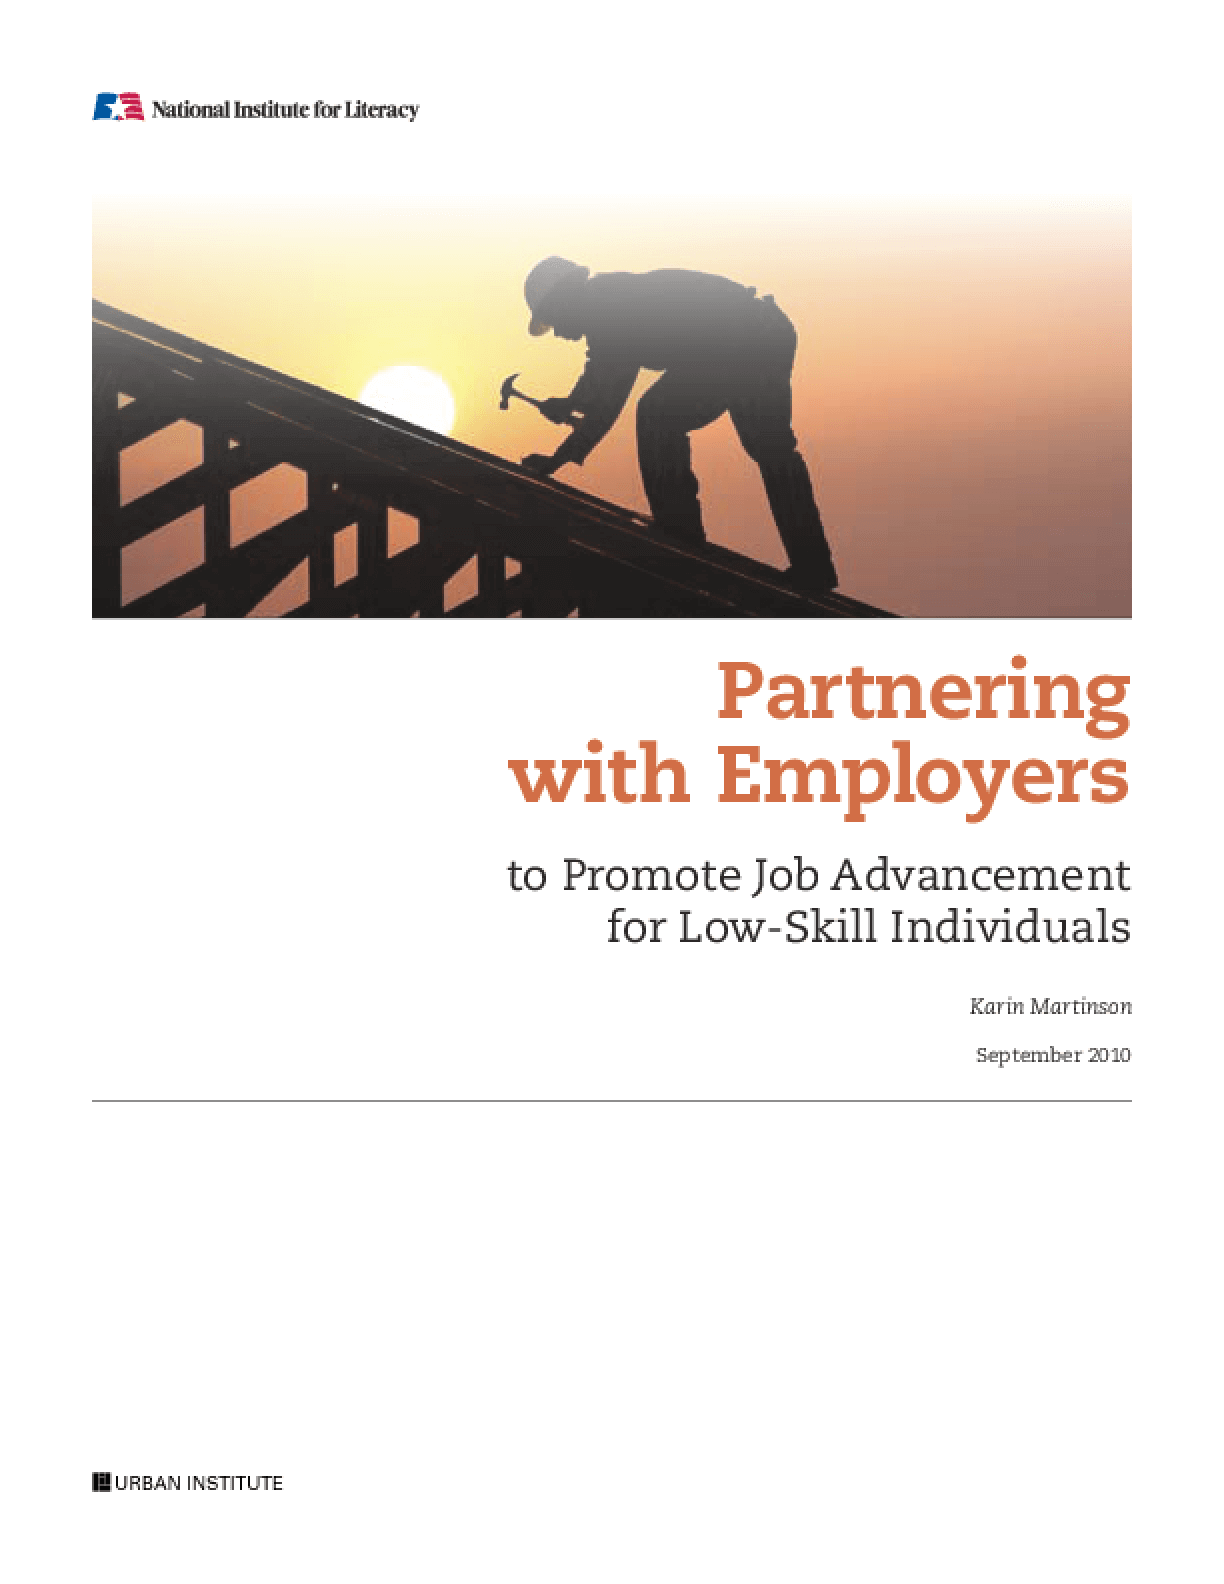 Partnering With Employers to Promote Job Advancement for Low-Skill Individuals